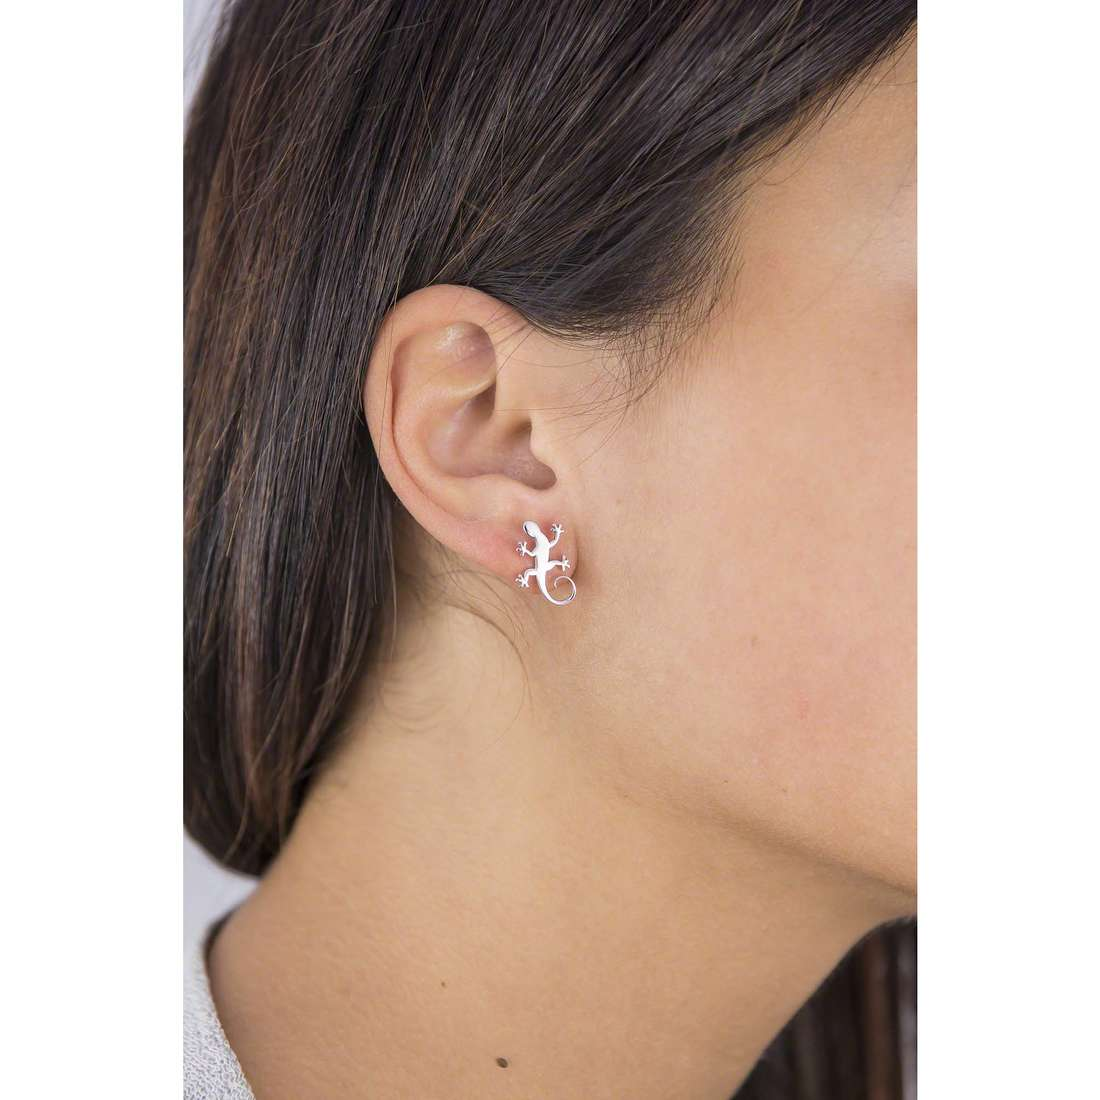 Giannotti earrings Il Geco woman GIANNOTTIGEA105 indosso